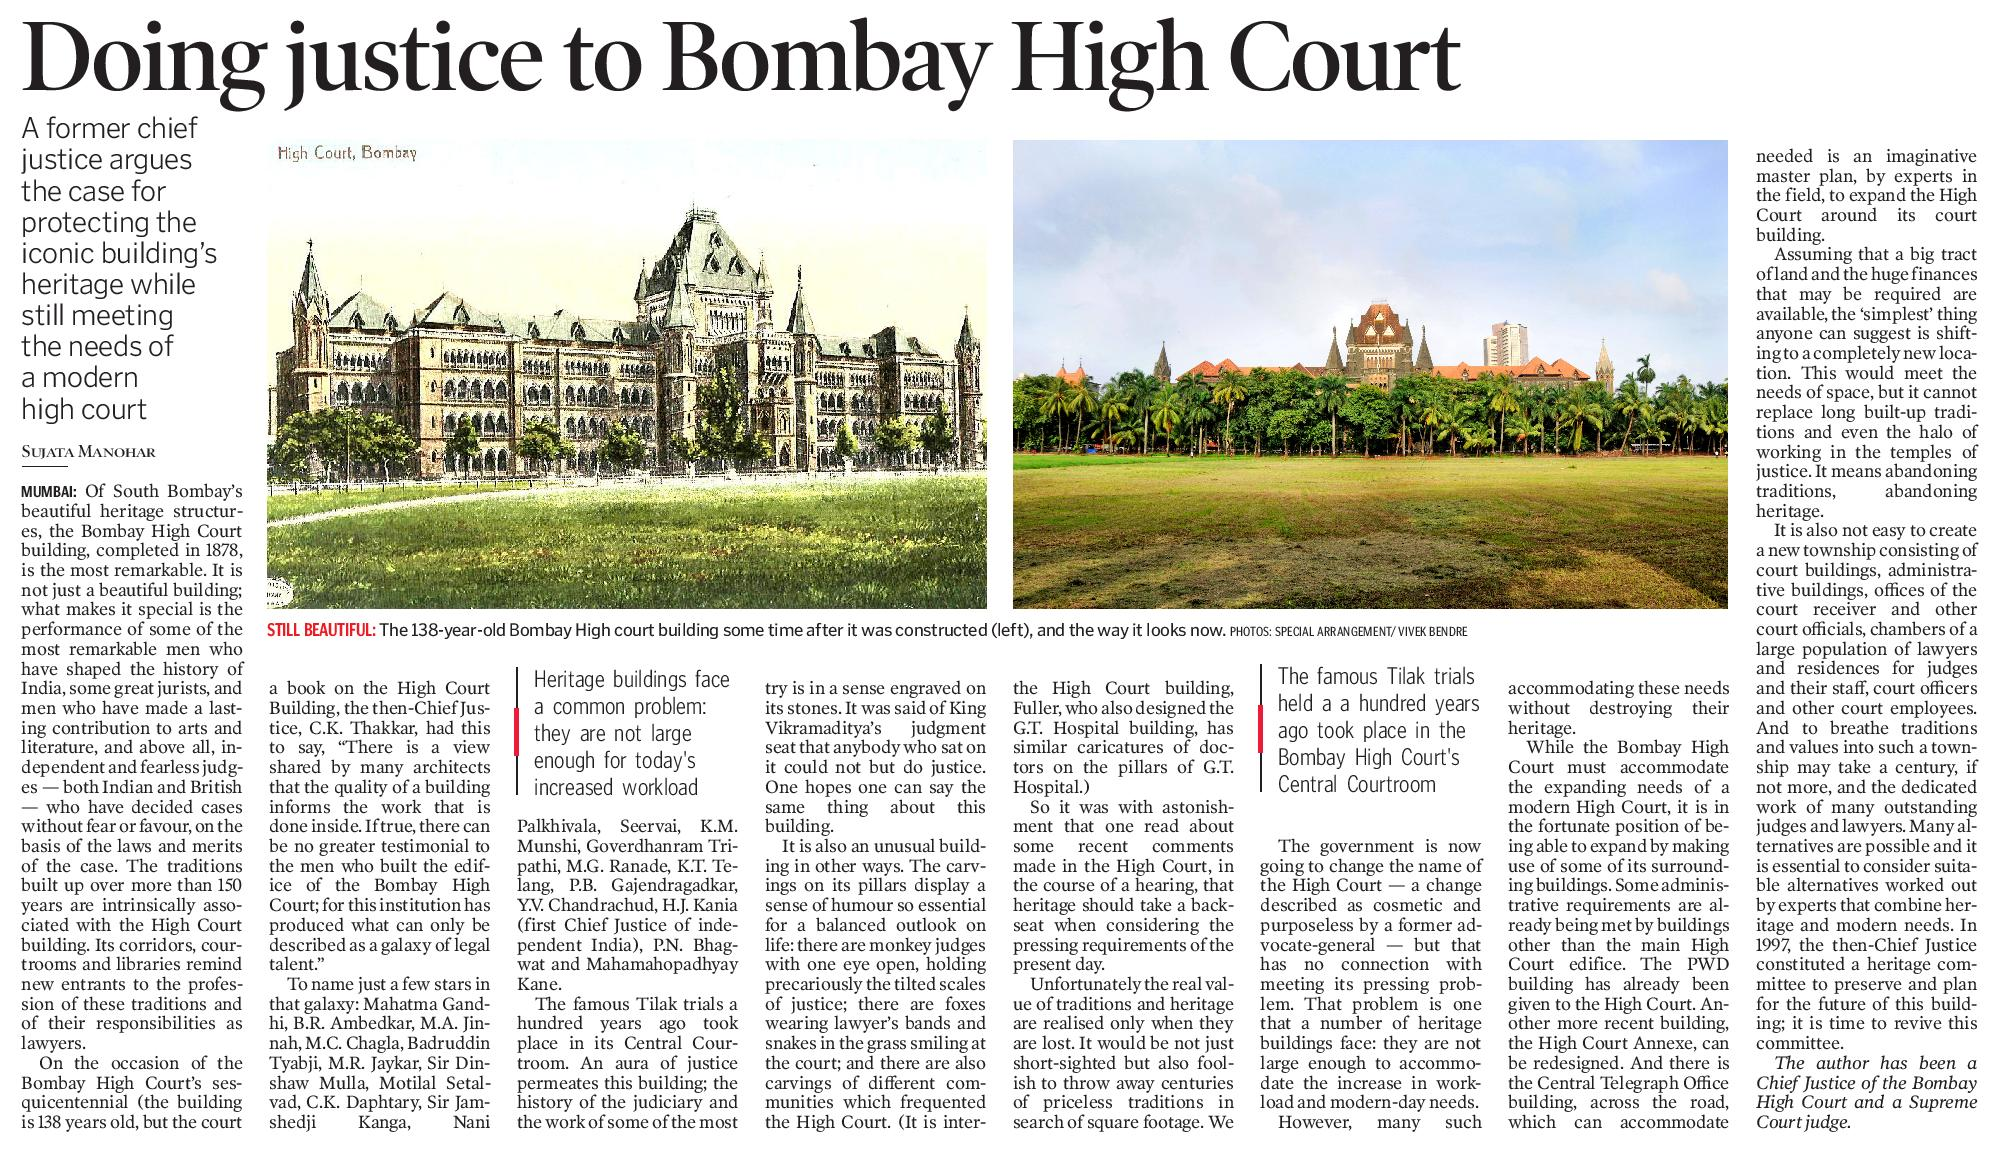 Hindu Article by Sujata Manohar on the High Court dated 14th July 2016